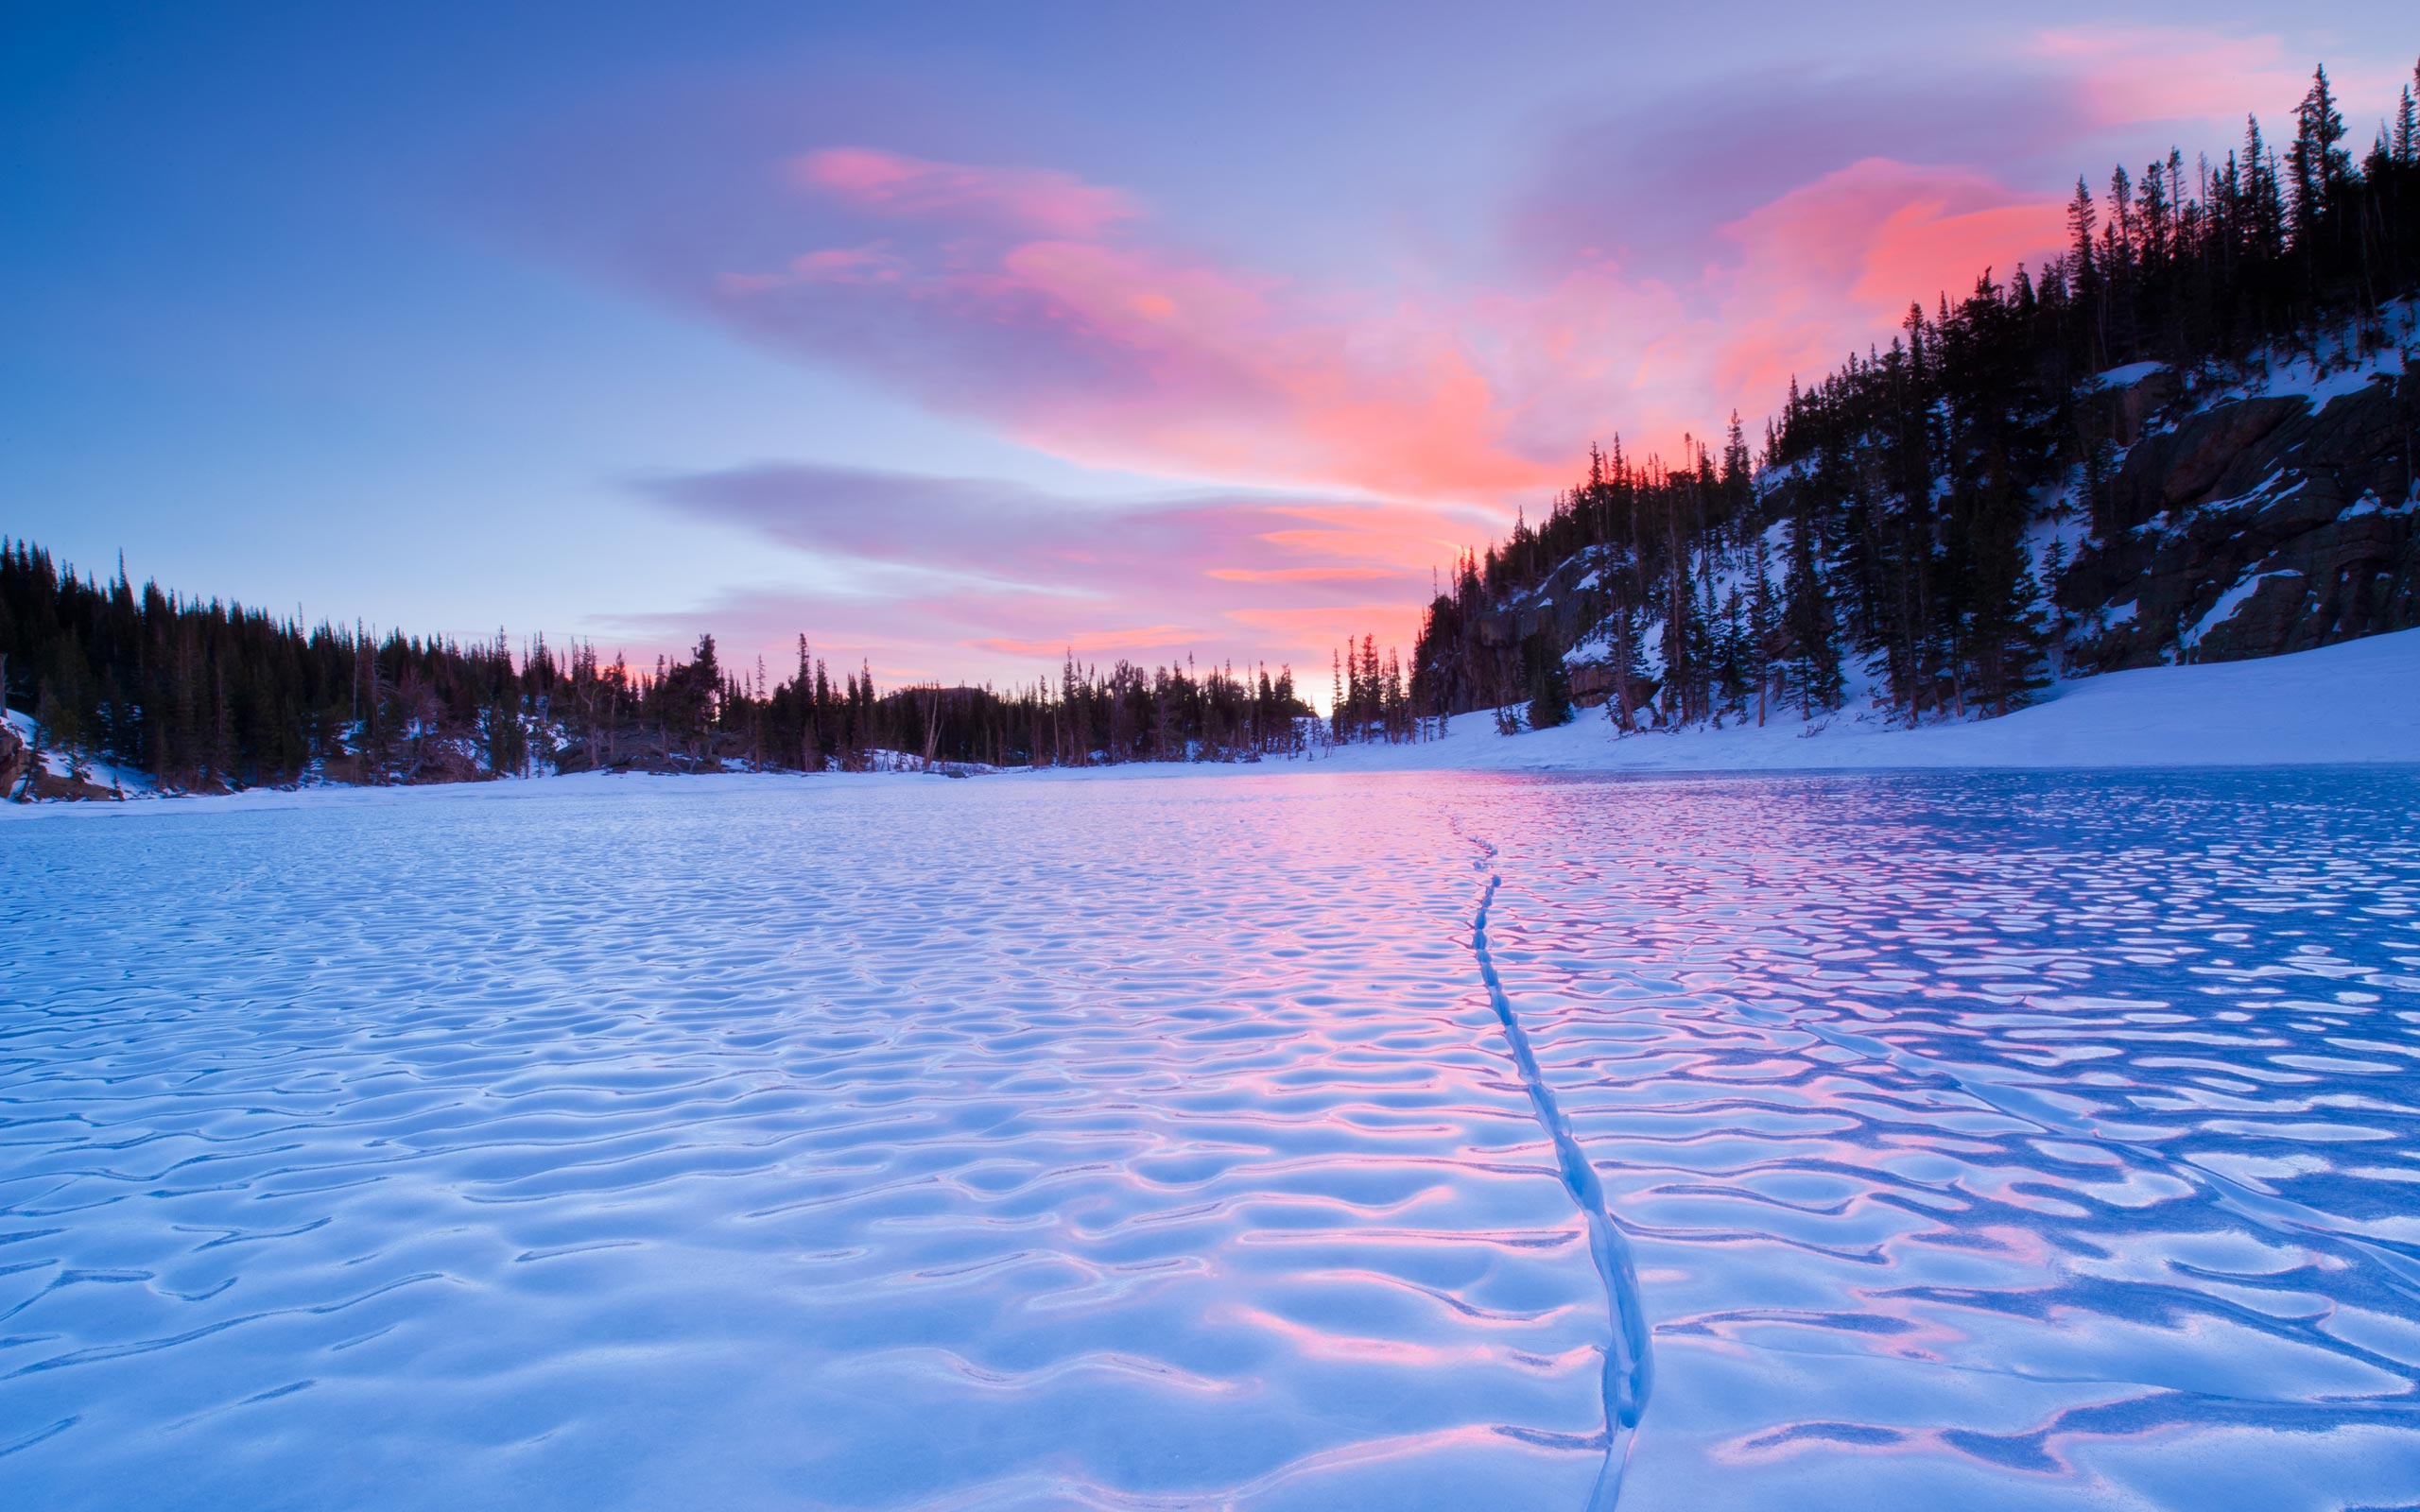 Frozen Lake-Wallpaper-ZTZ12